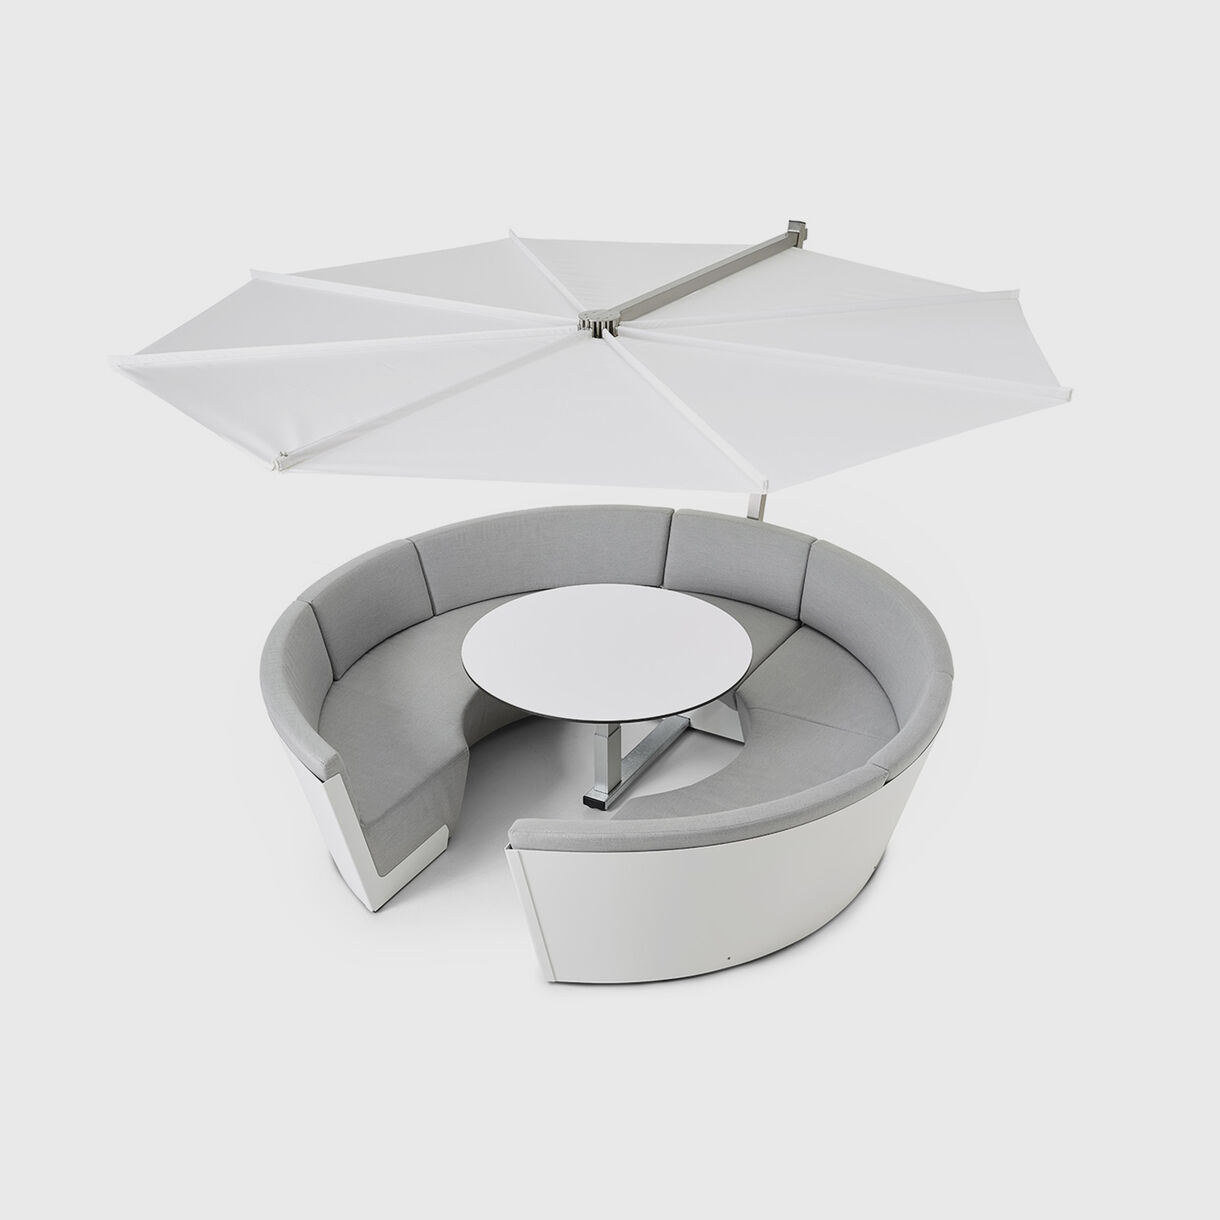 Kosmos Outdoor Lounge, 8 Seater with Parasol